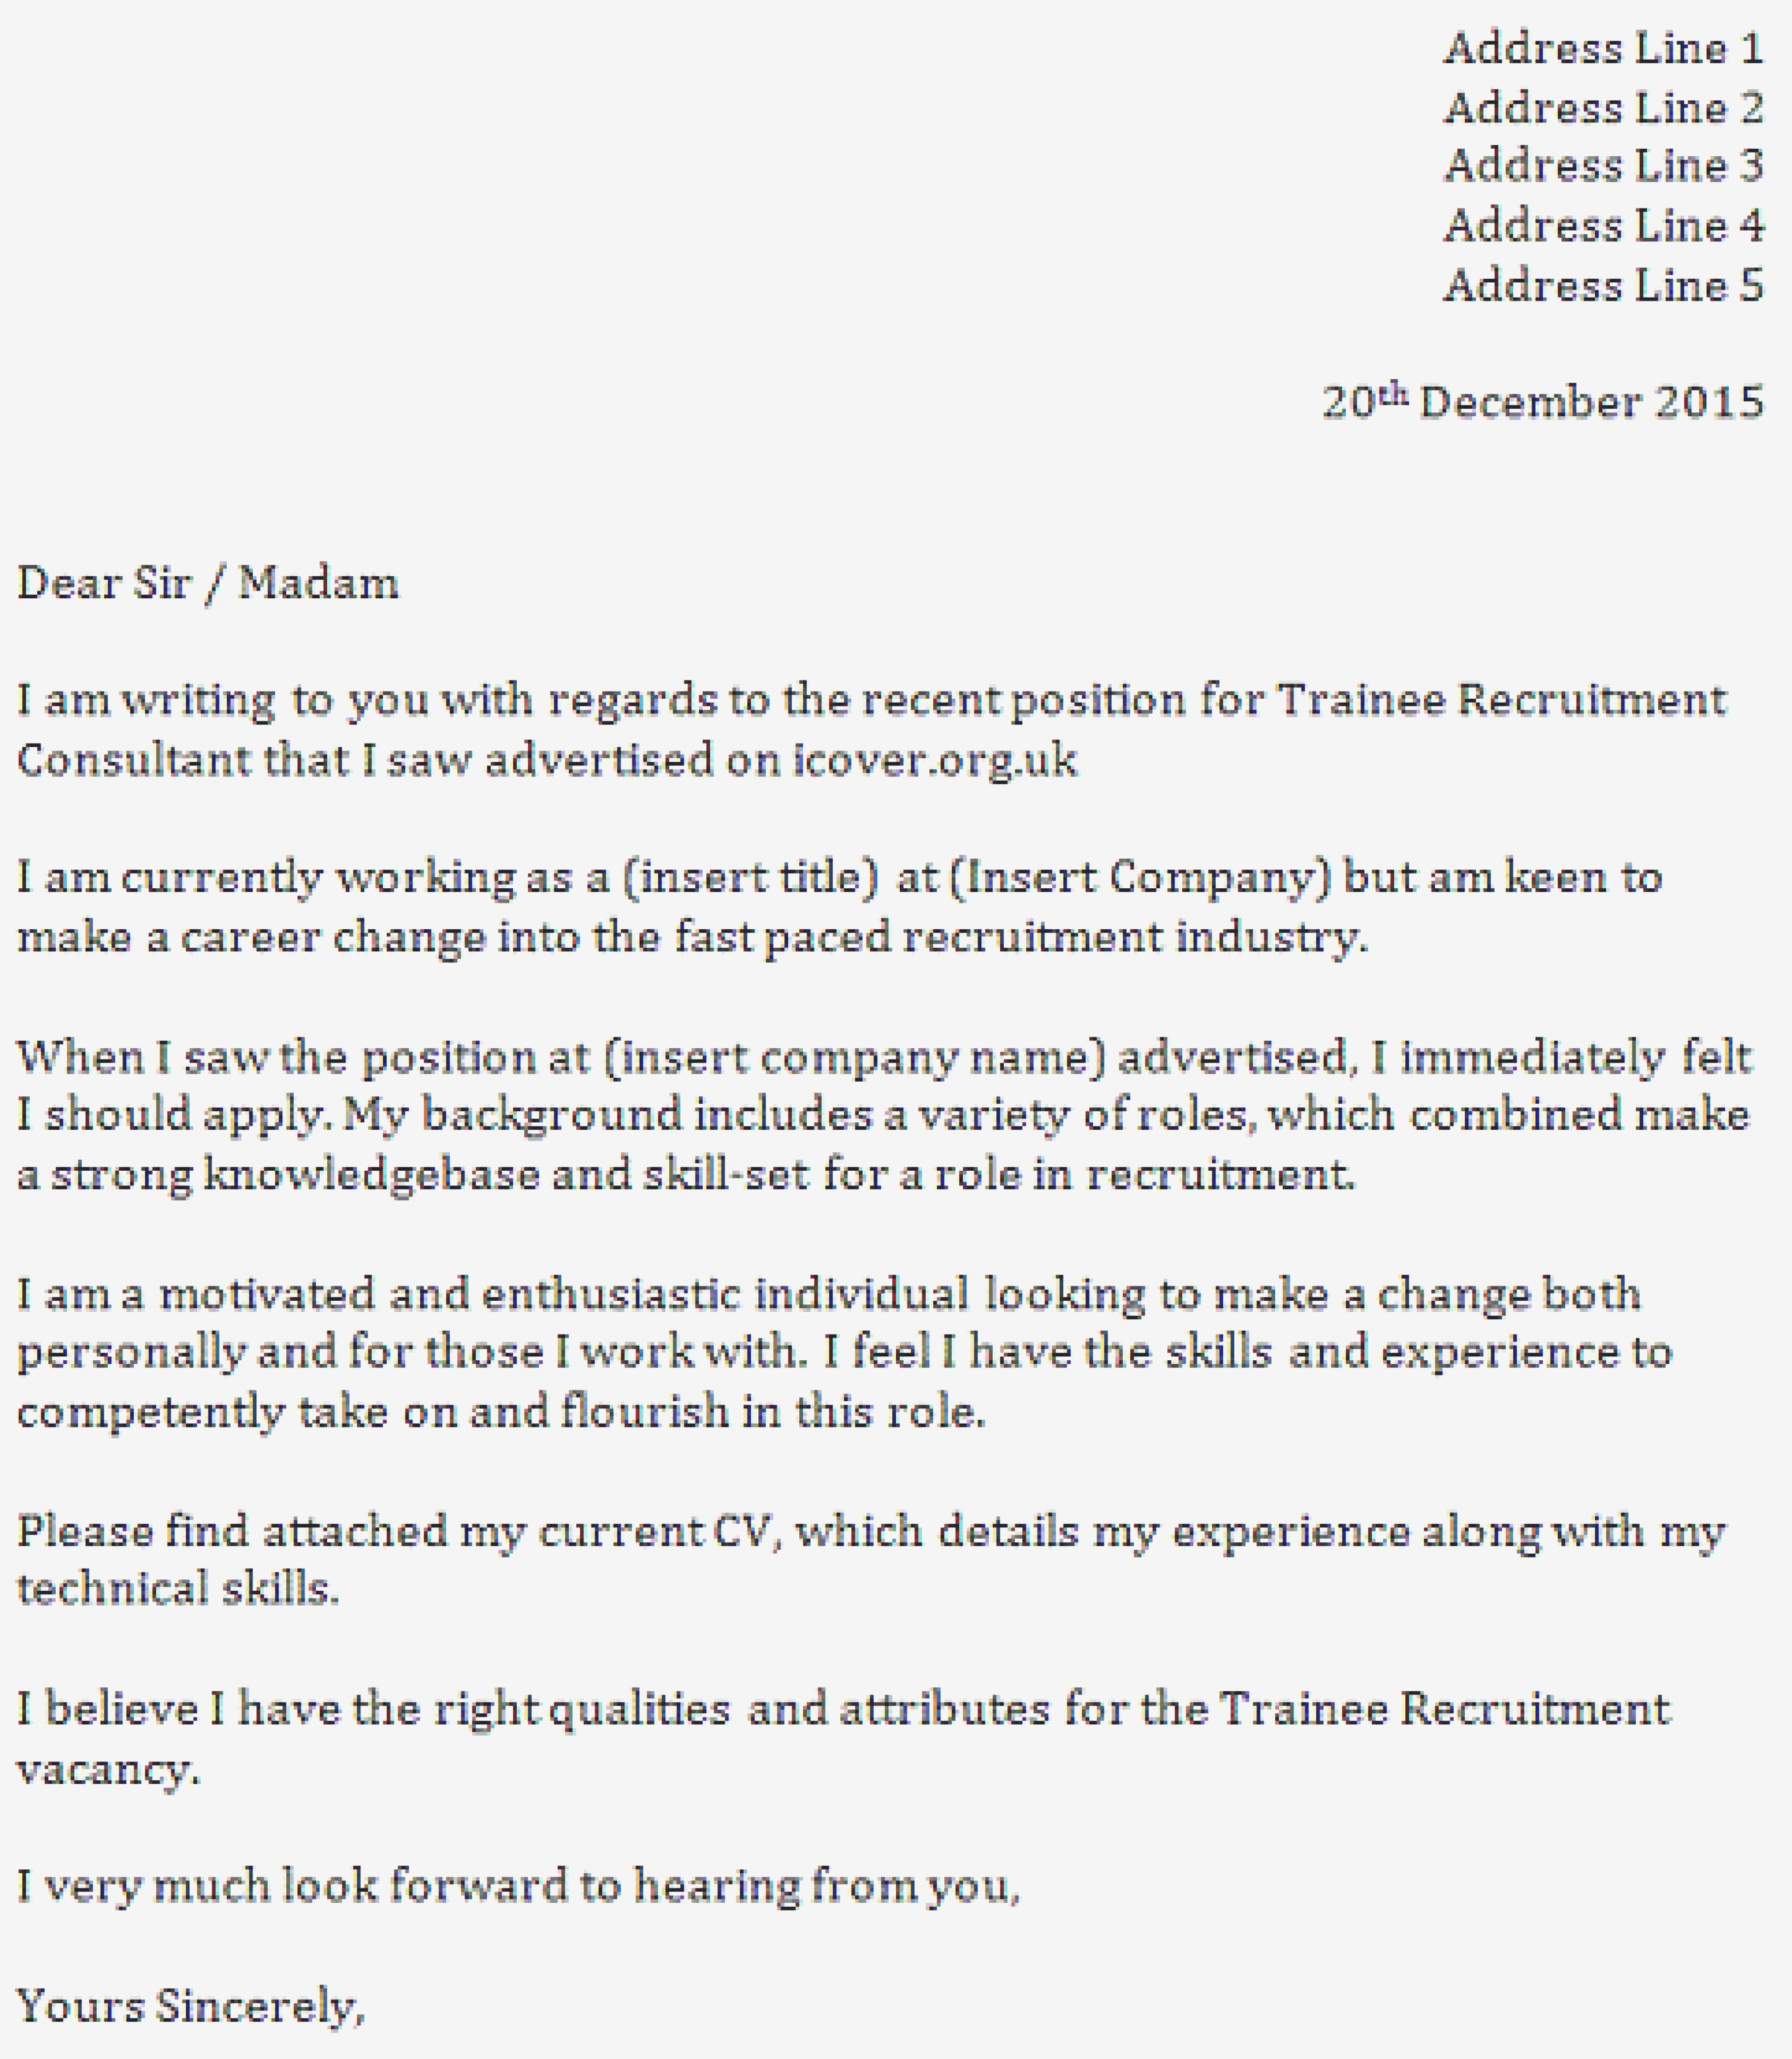 Best Of Create A Cover Letter For A Job Job Cover Letter Job